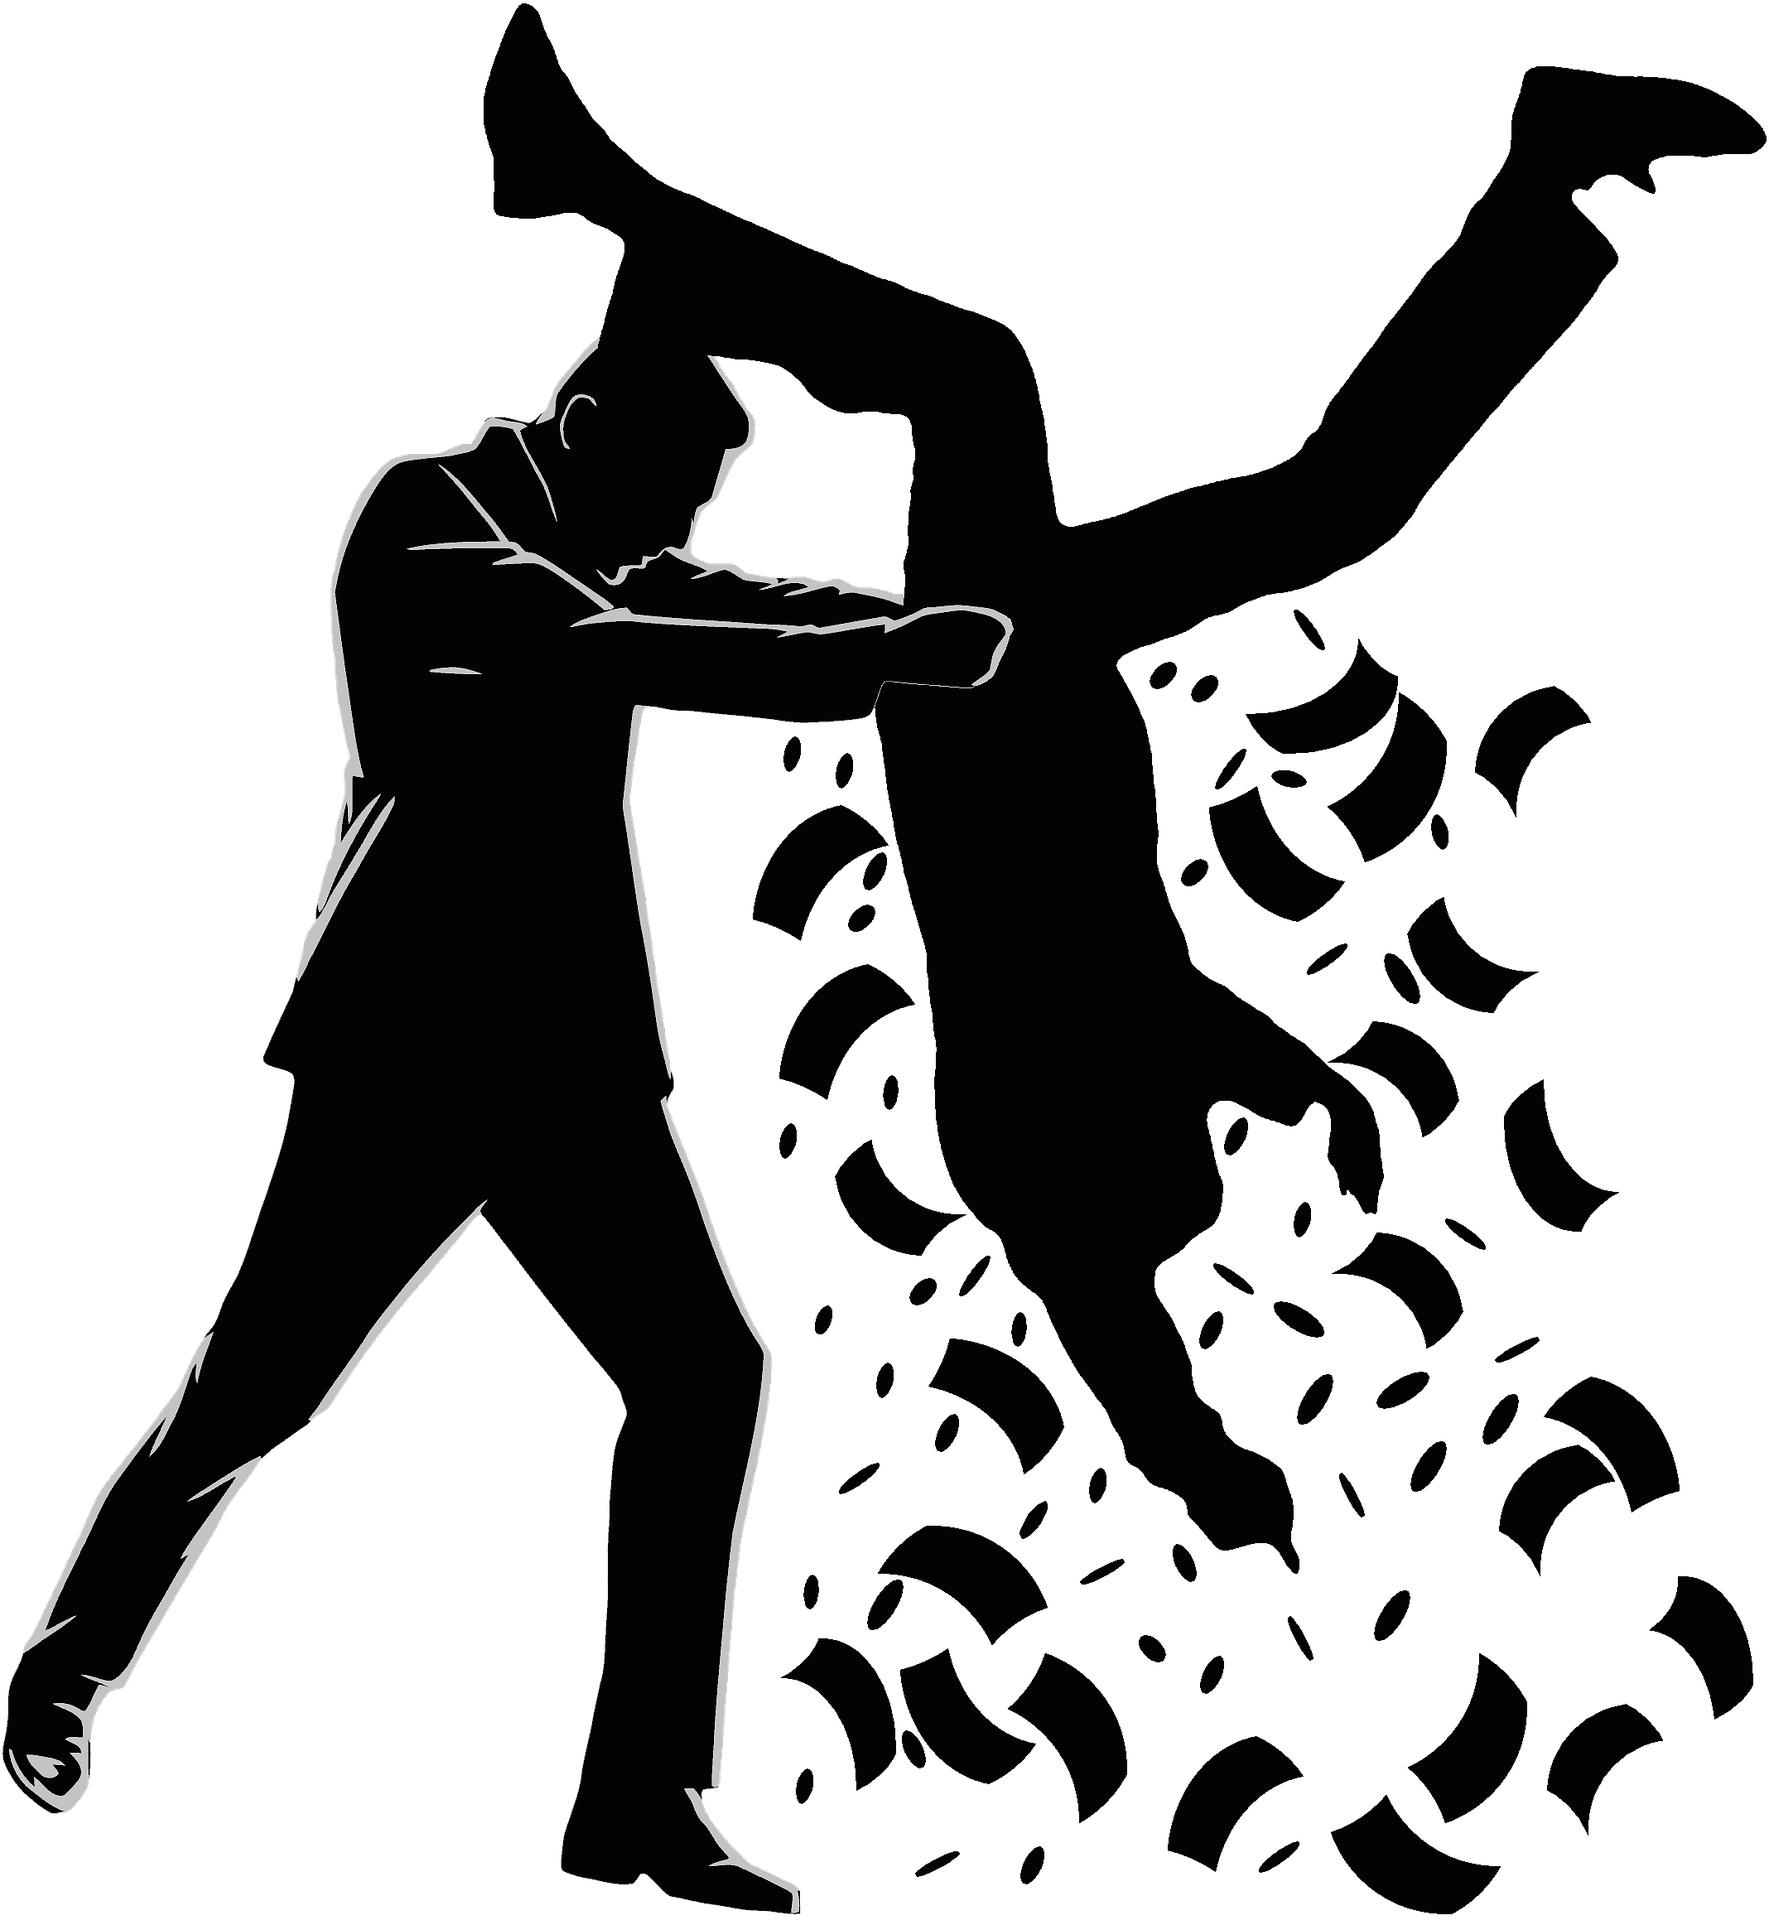 Cartoon silhouette of a business man holding another man upside down and shaking the money out of his pockets, representing the harassment of debt collectors.